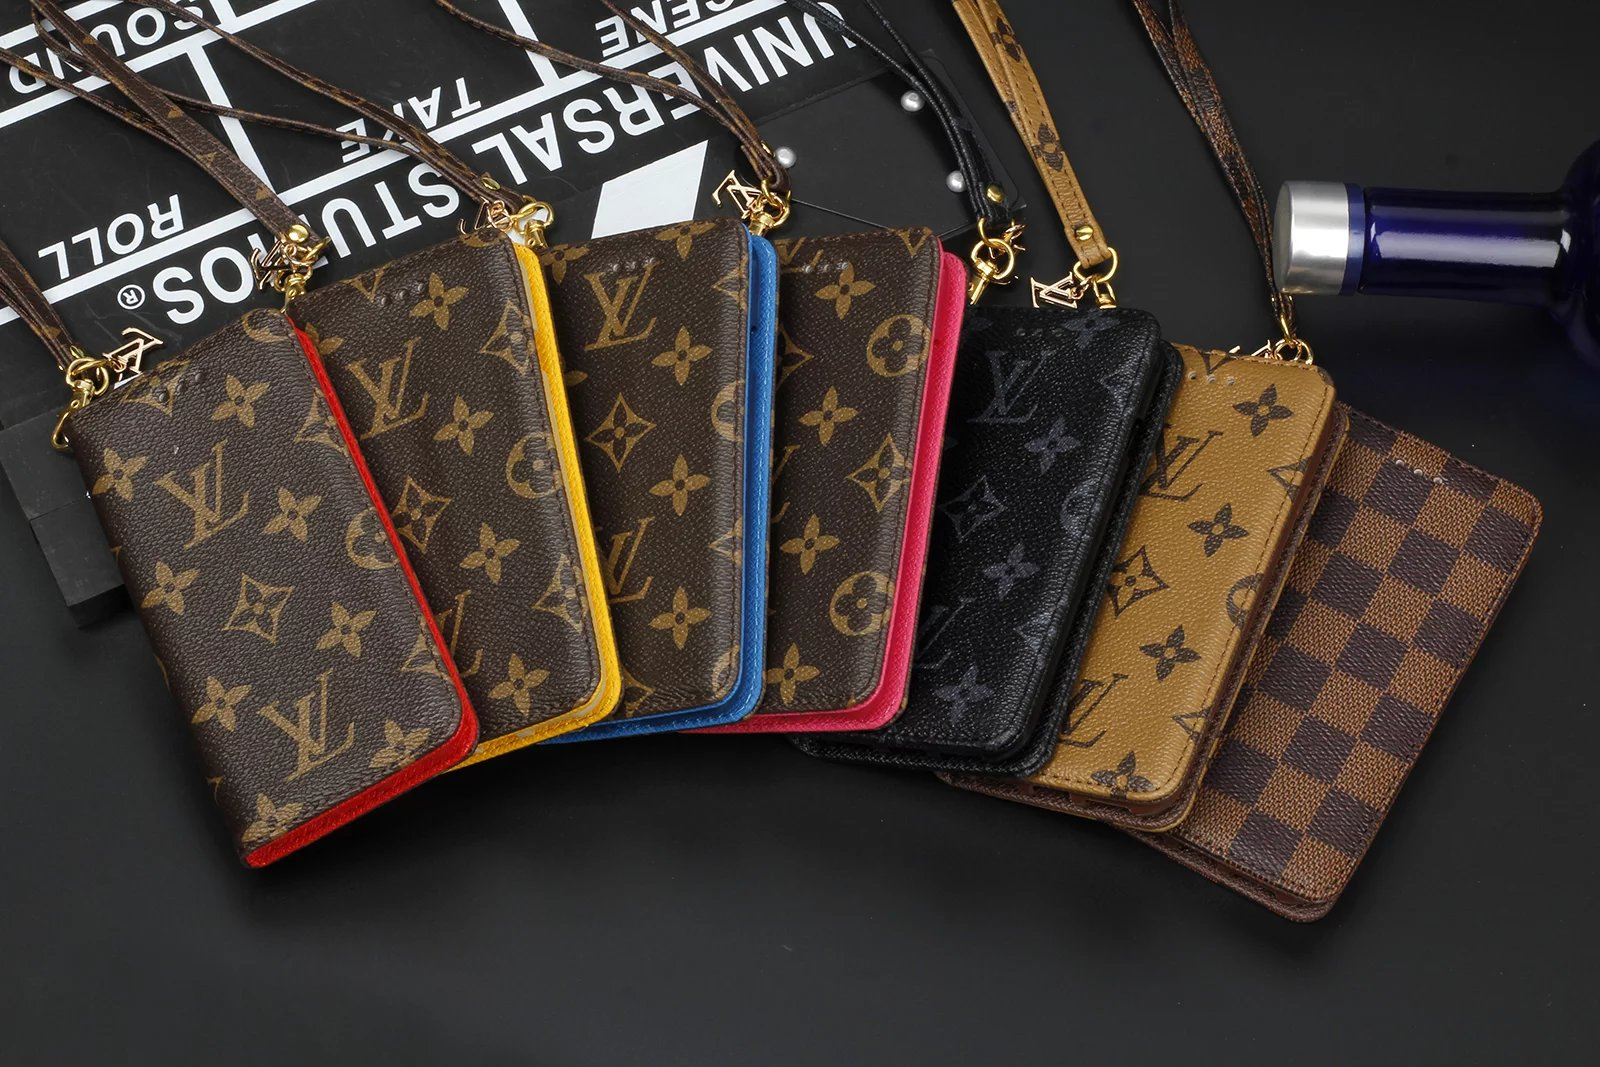 iphone case gestalten iphone handyhülle Louis Vuitton iphone 8 Plus hüllen original apple iphone 8 Plus hülle zubehör apple samsung oder iphone iphone hülle erstellen hülle i phone 8 Plus schale iphone 8 Plus